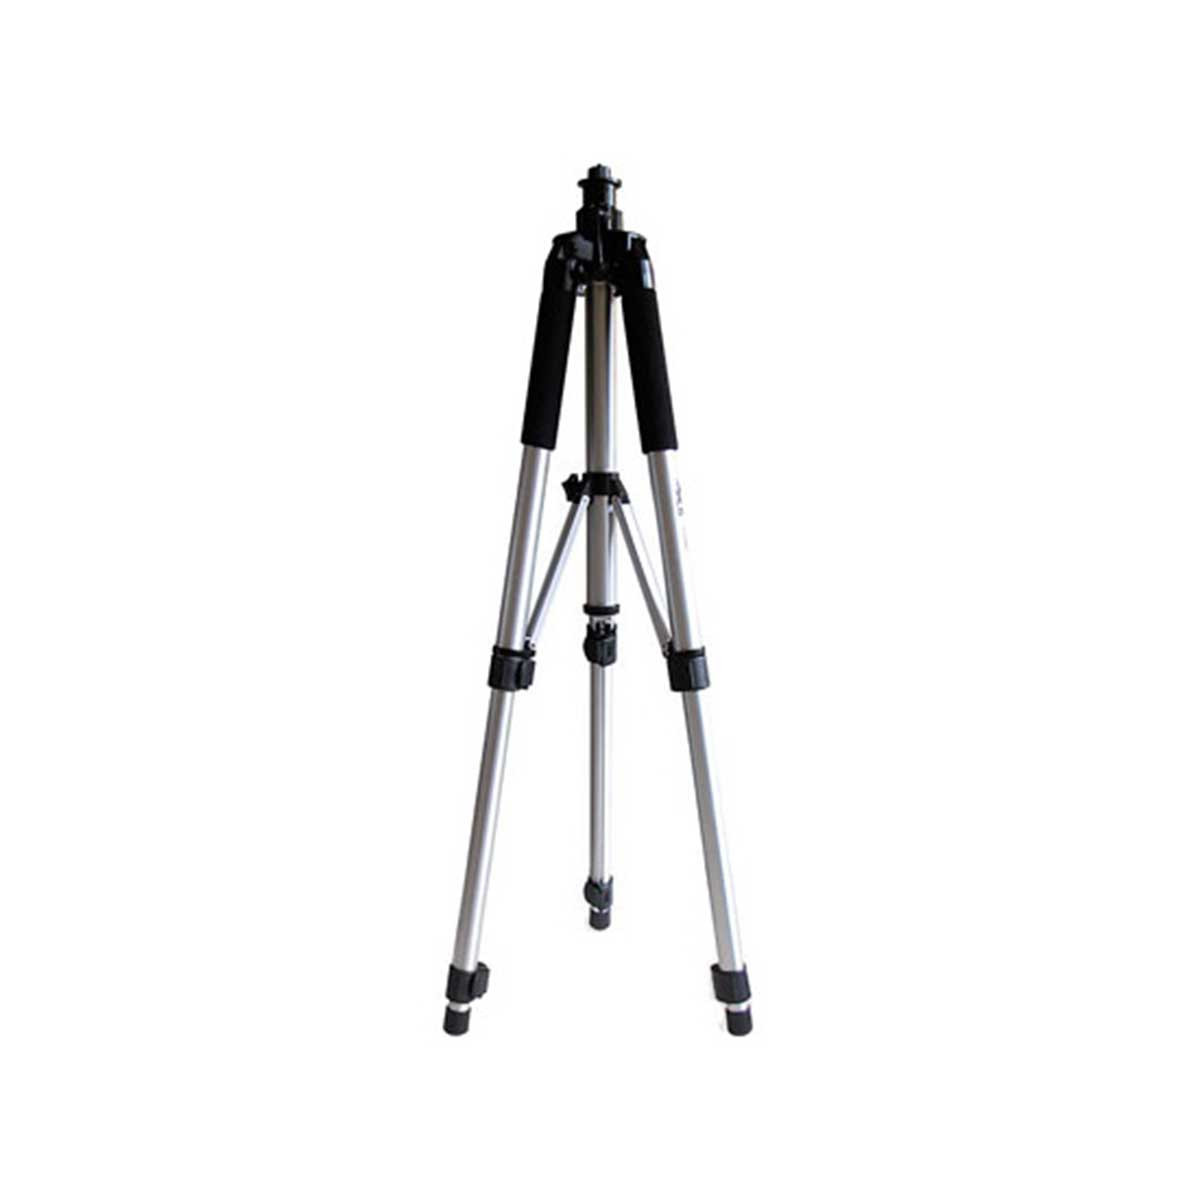 Elevator Tripod with Adjustable Height